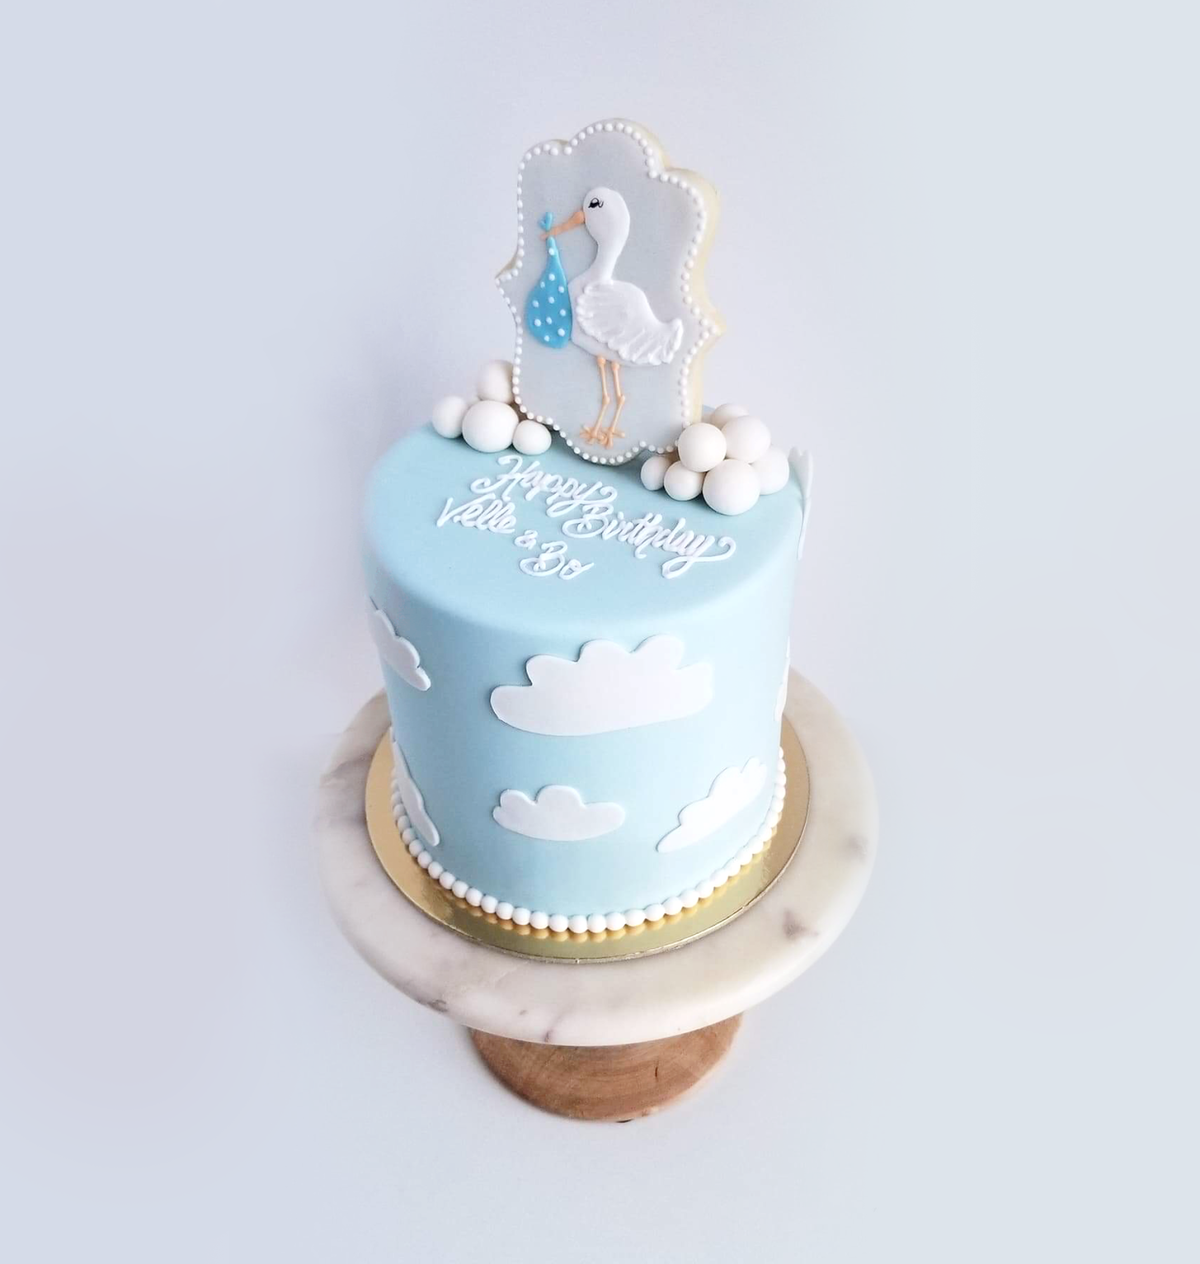 Whippt Desserts - Baby Shower Cake Oct 2018